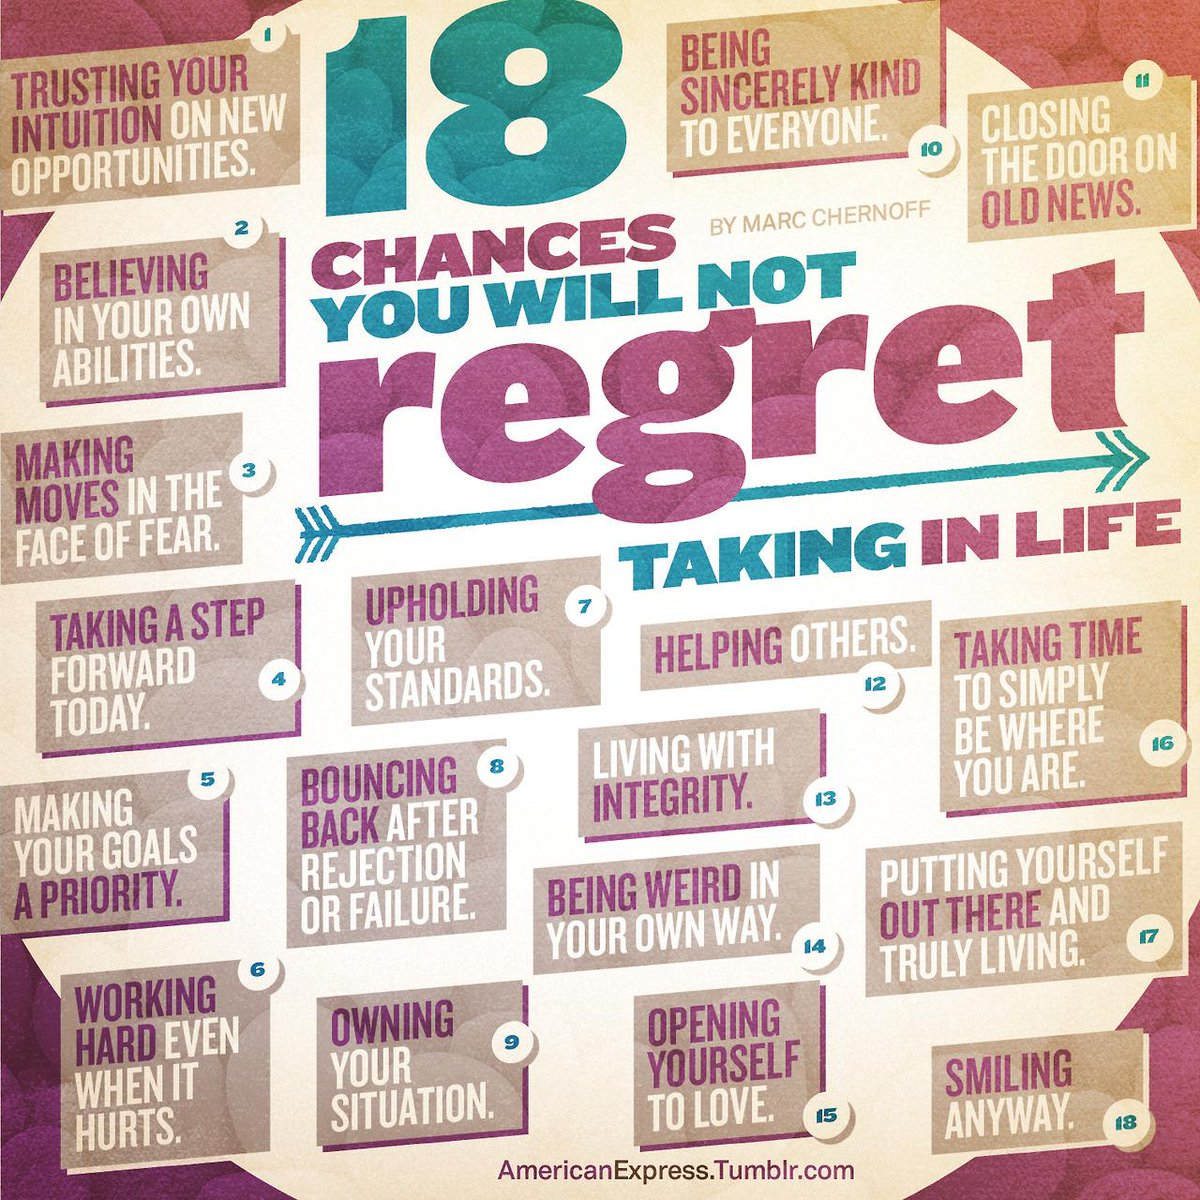 18 Chances You Will Not Regret Taking in Life: http://t.co/U2U76f0avD http://t.co/qLaJWhMYqM